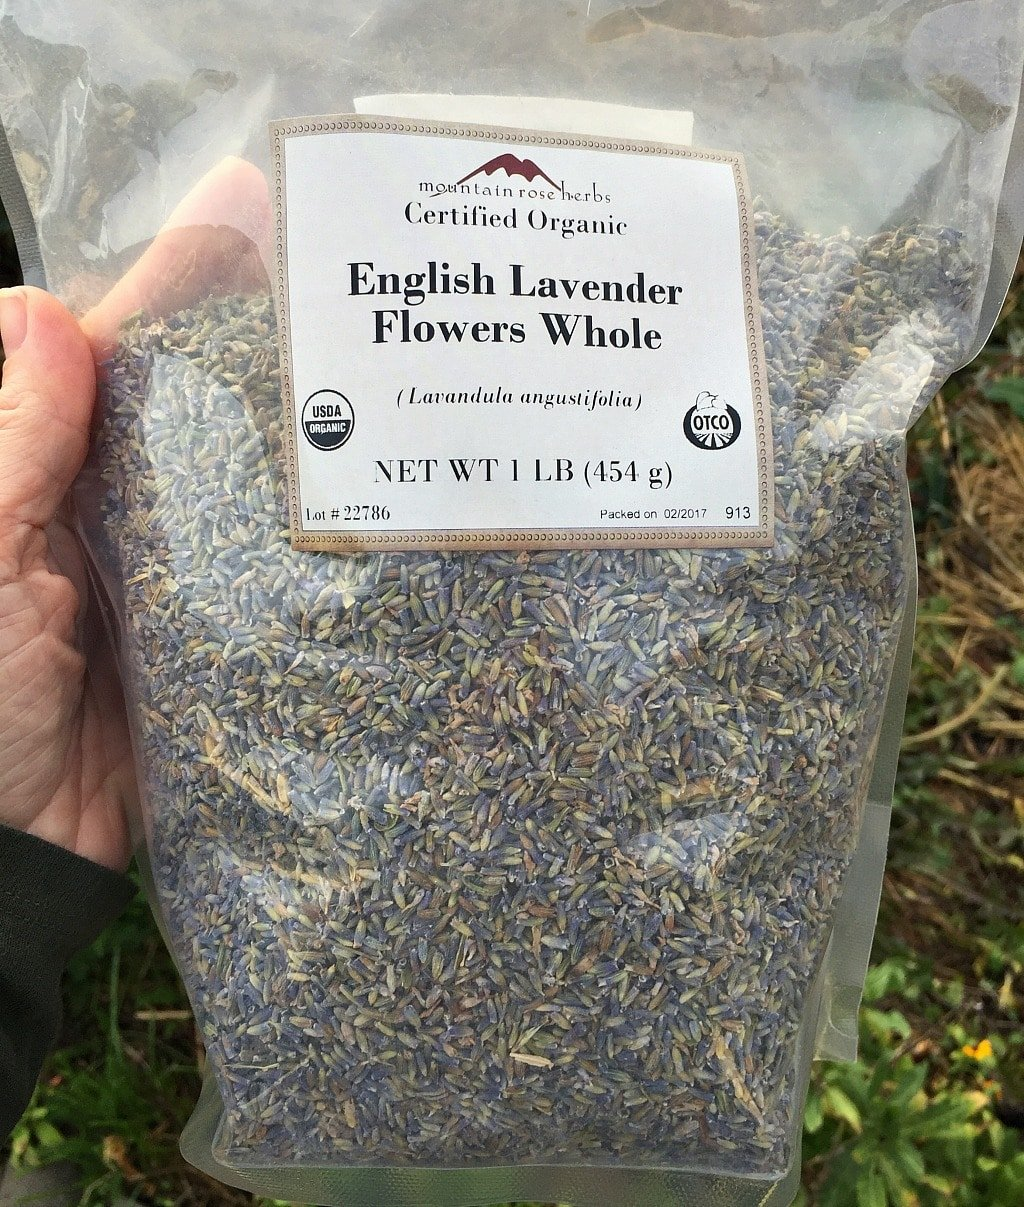 a hand holding a bag of Mountain Rose Herbs dried lavender flowers